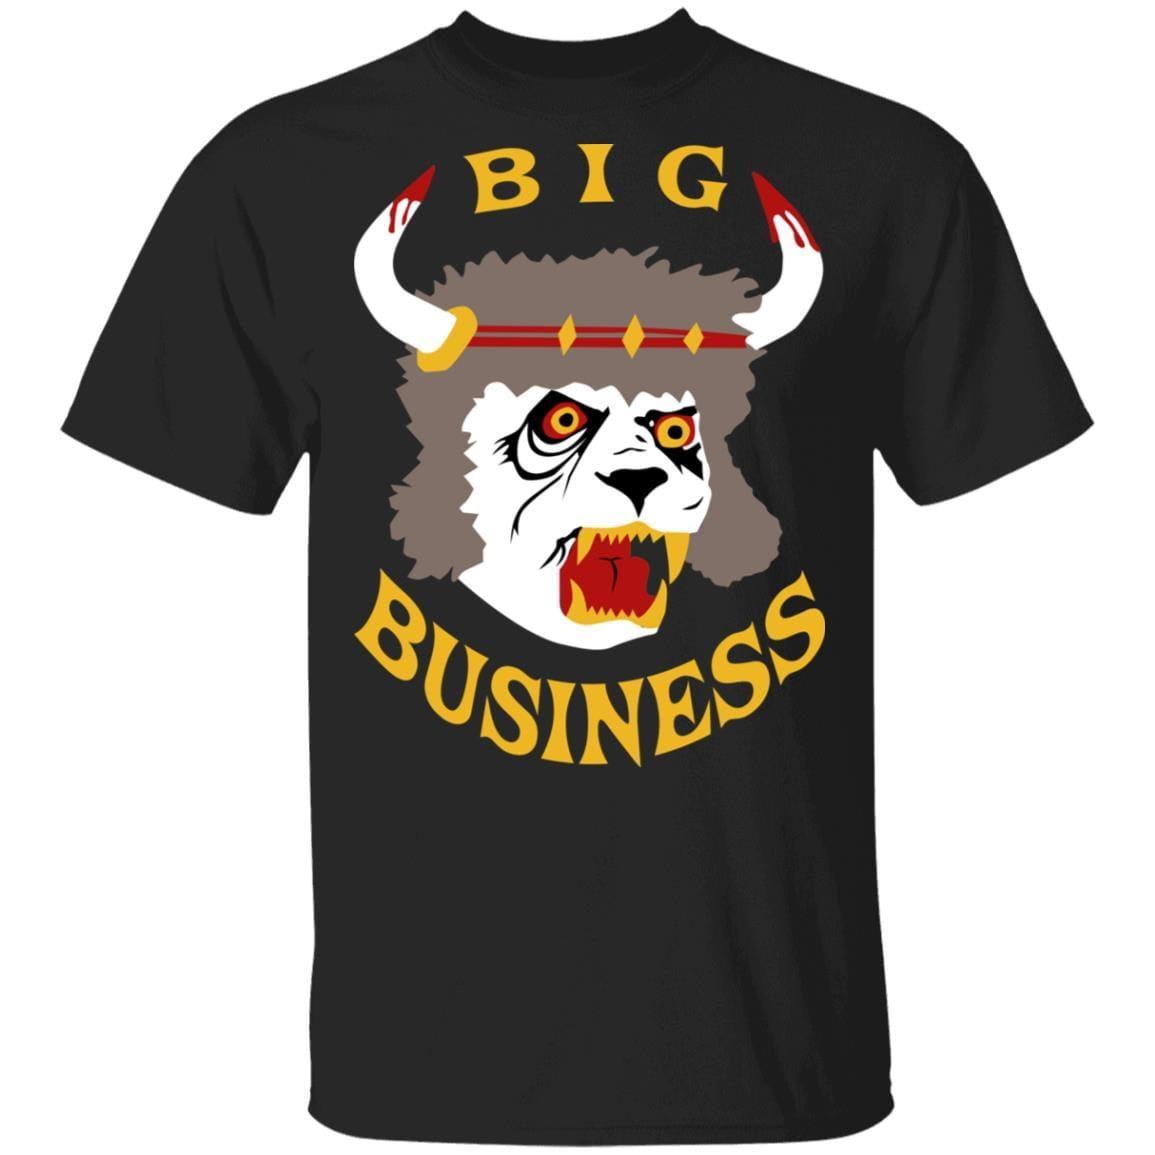 Big Business Official Merch Horns T-Shirts, Hoodies 1049-9953-88064167-48144 - Tee Ript